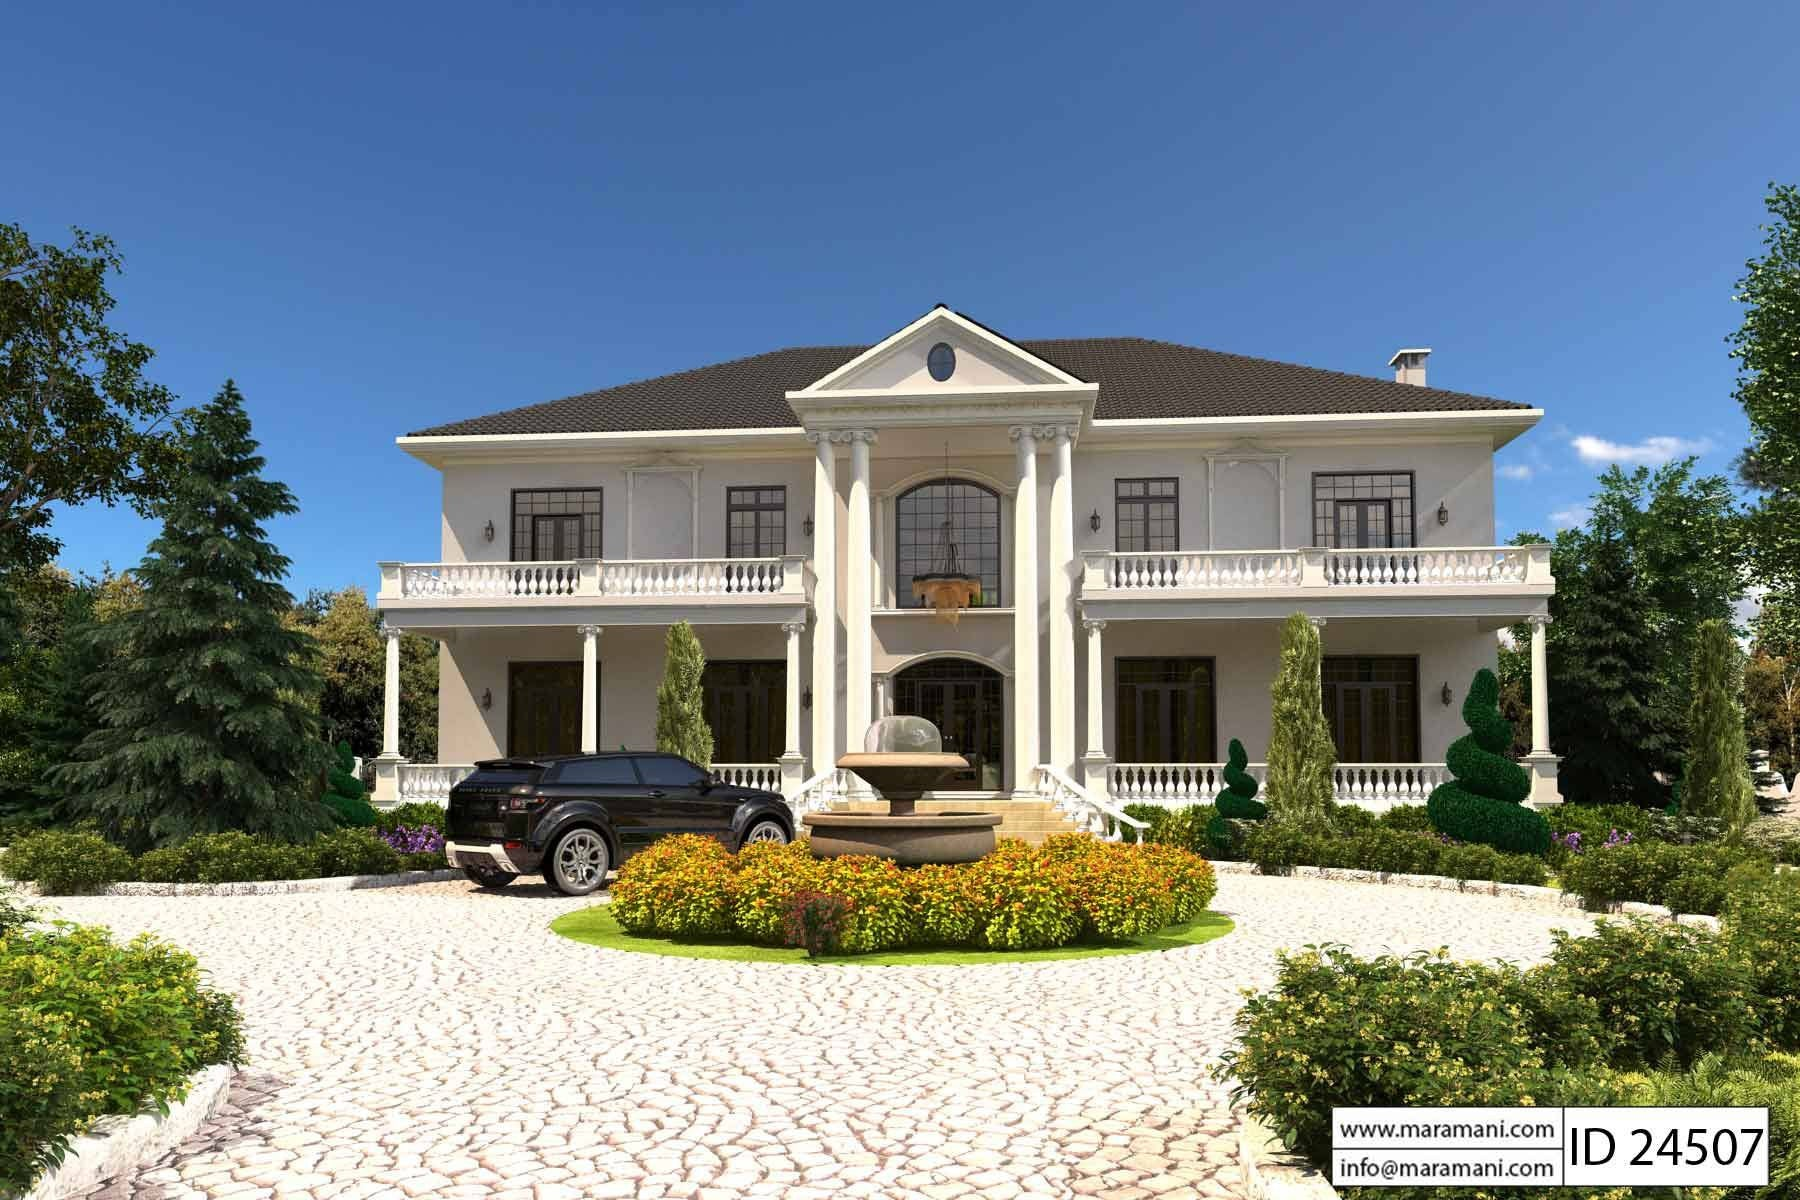 4 bedroom house plan id 24507 - 4 Bedroom House Plans